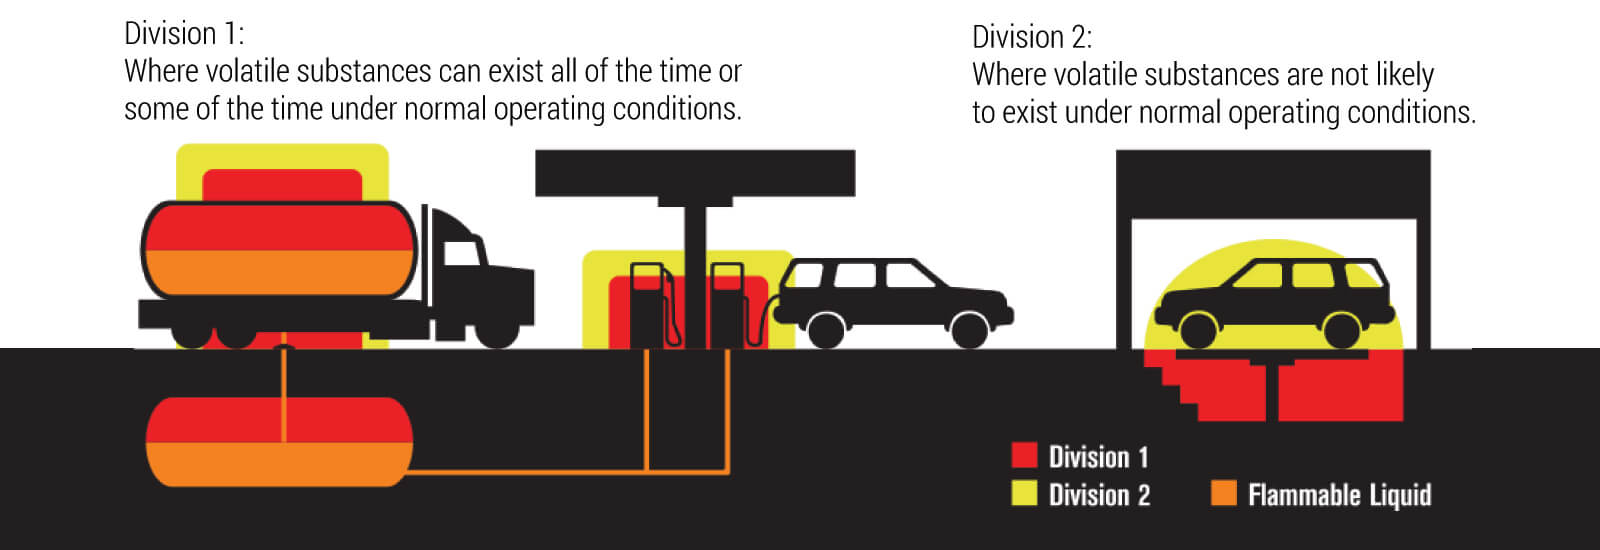 Instrinscailly safe division certification explainer image